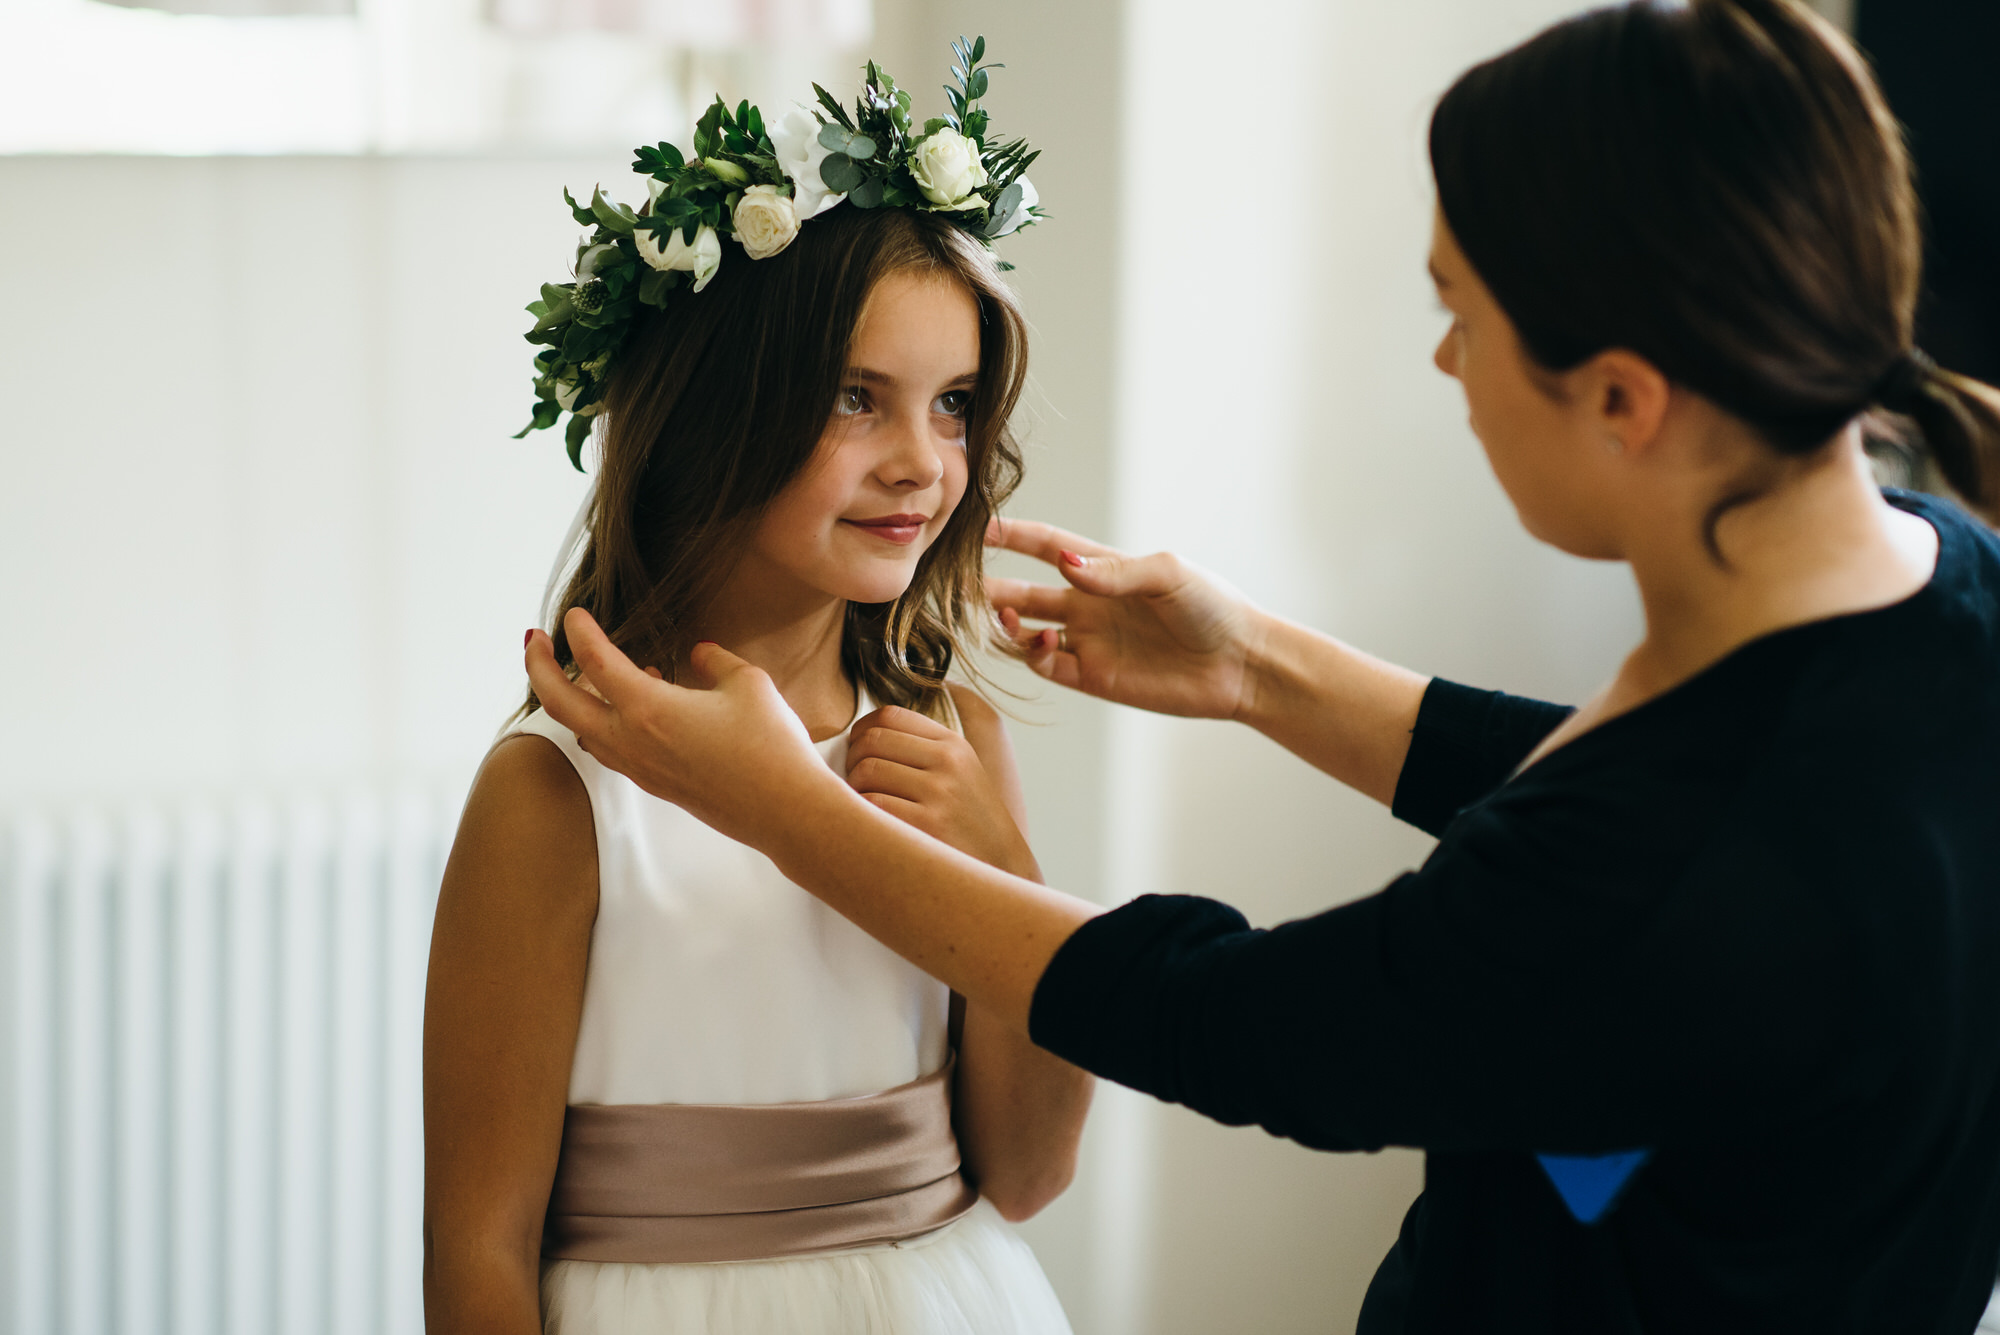 Flower girl wedding prep